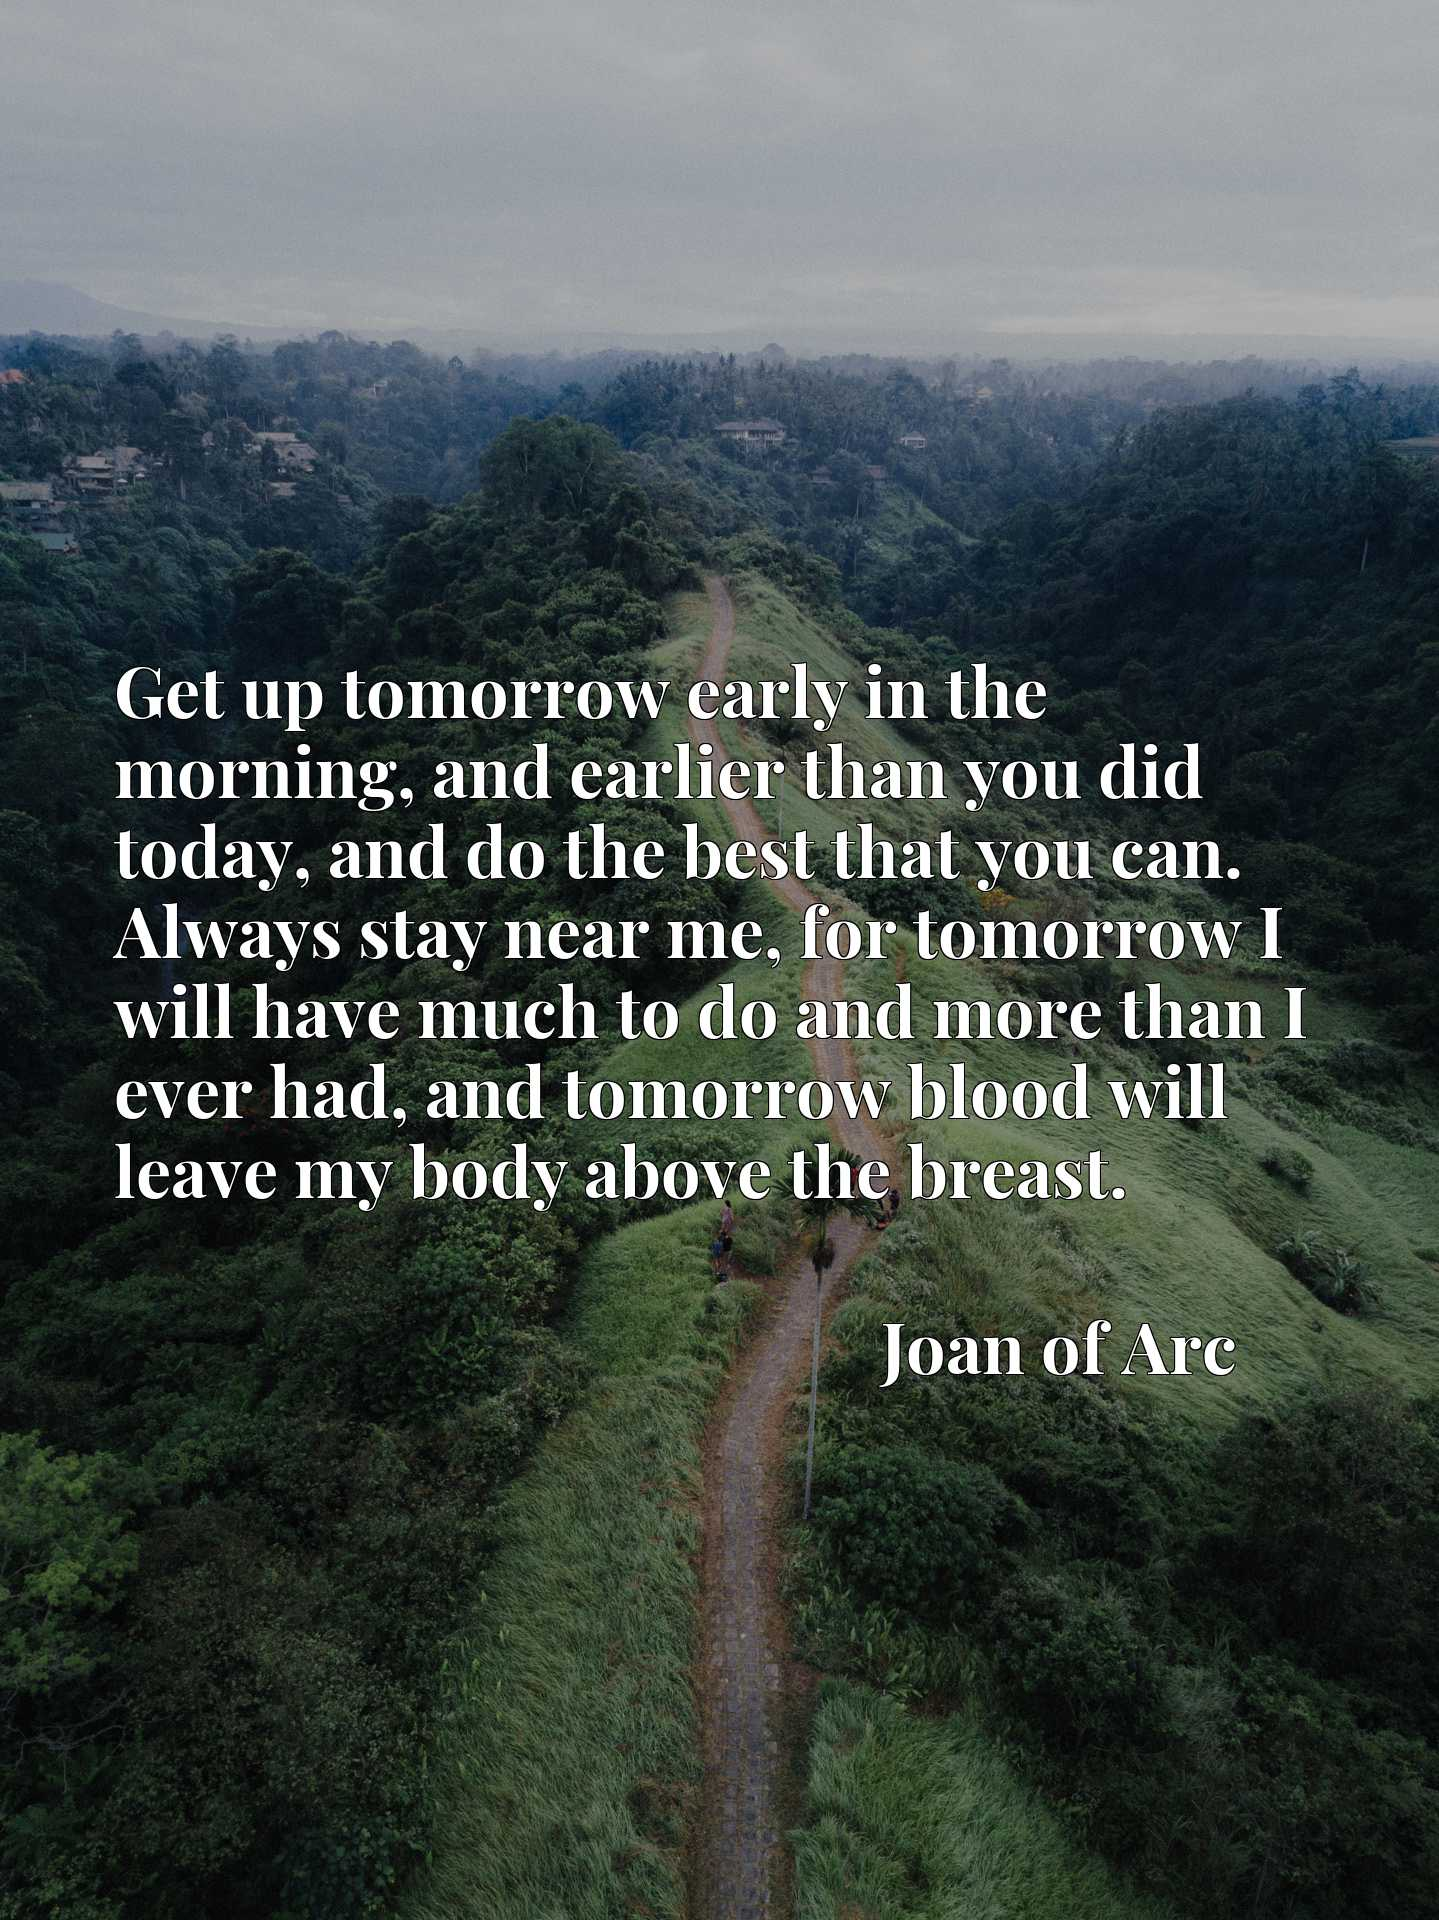 Get up tomorrow early in the morning, and earlier than you did today, and do the best that you can. Always stay near me, for tomorrow I will have much to do and more than I ever had, and tomorrow blood will leave my body above the breast.